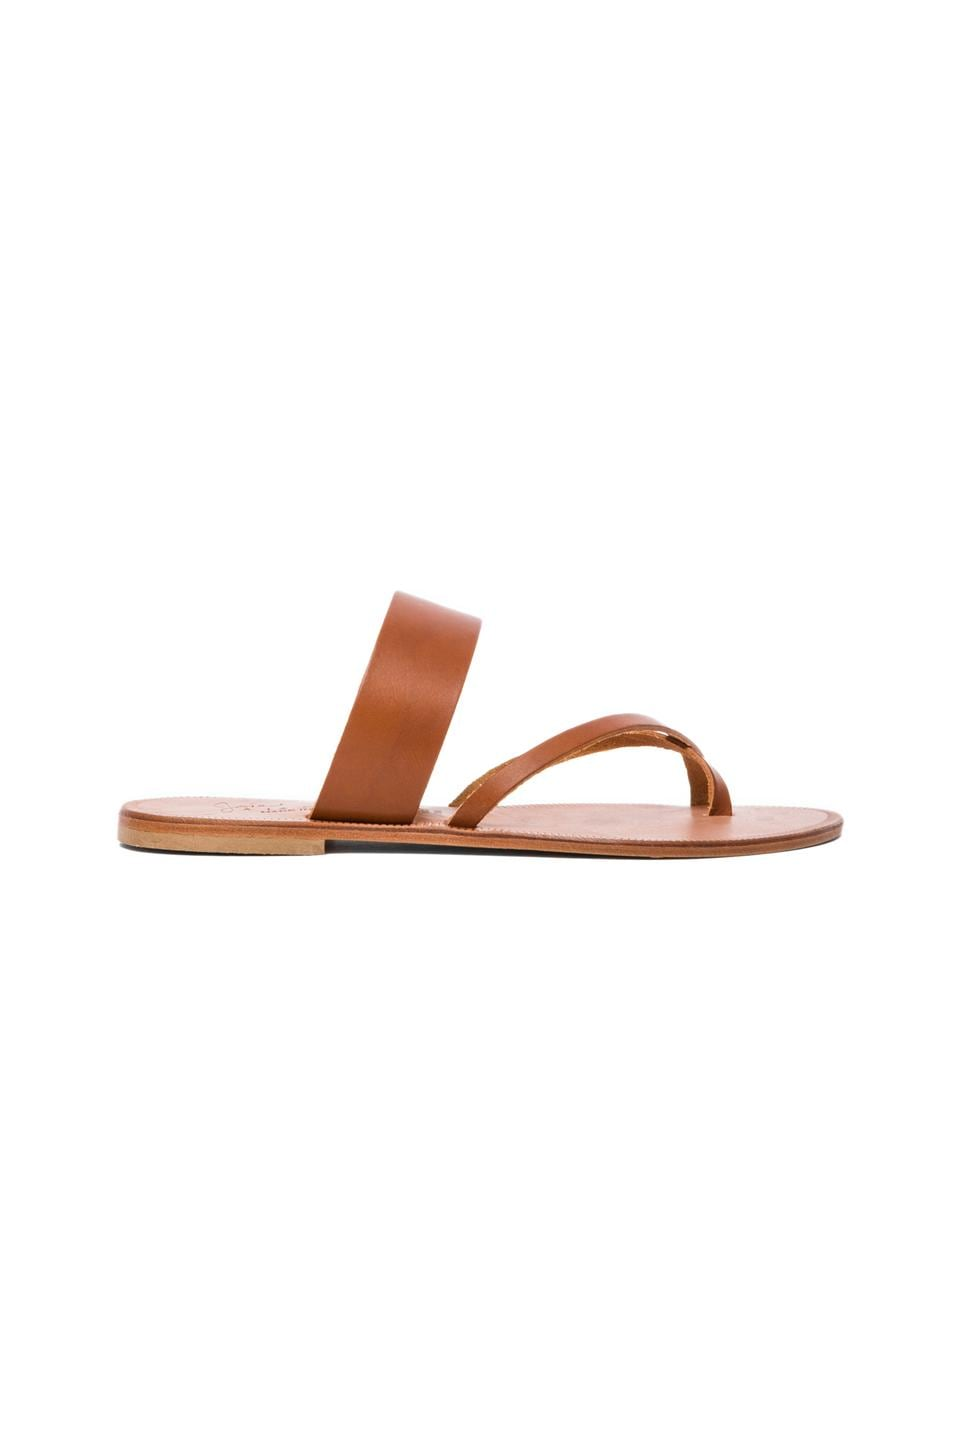 Joie La Celle Sandal in Cognac